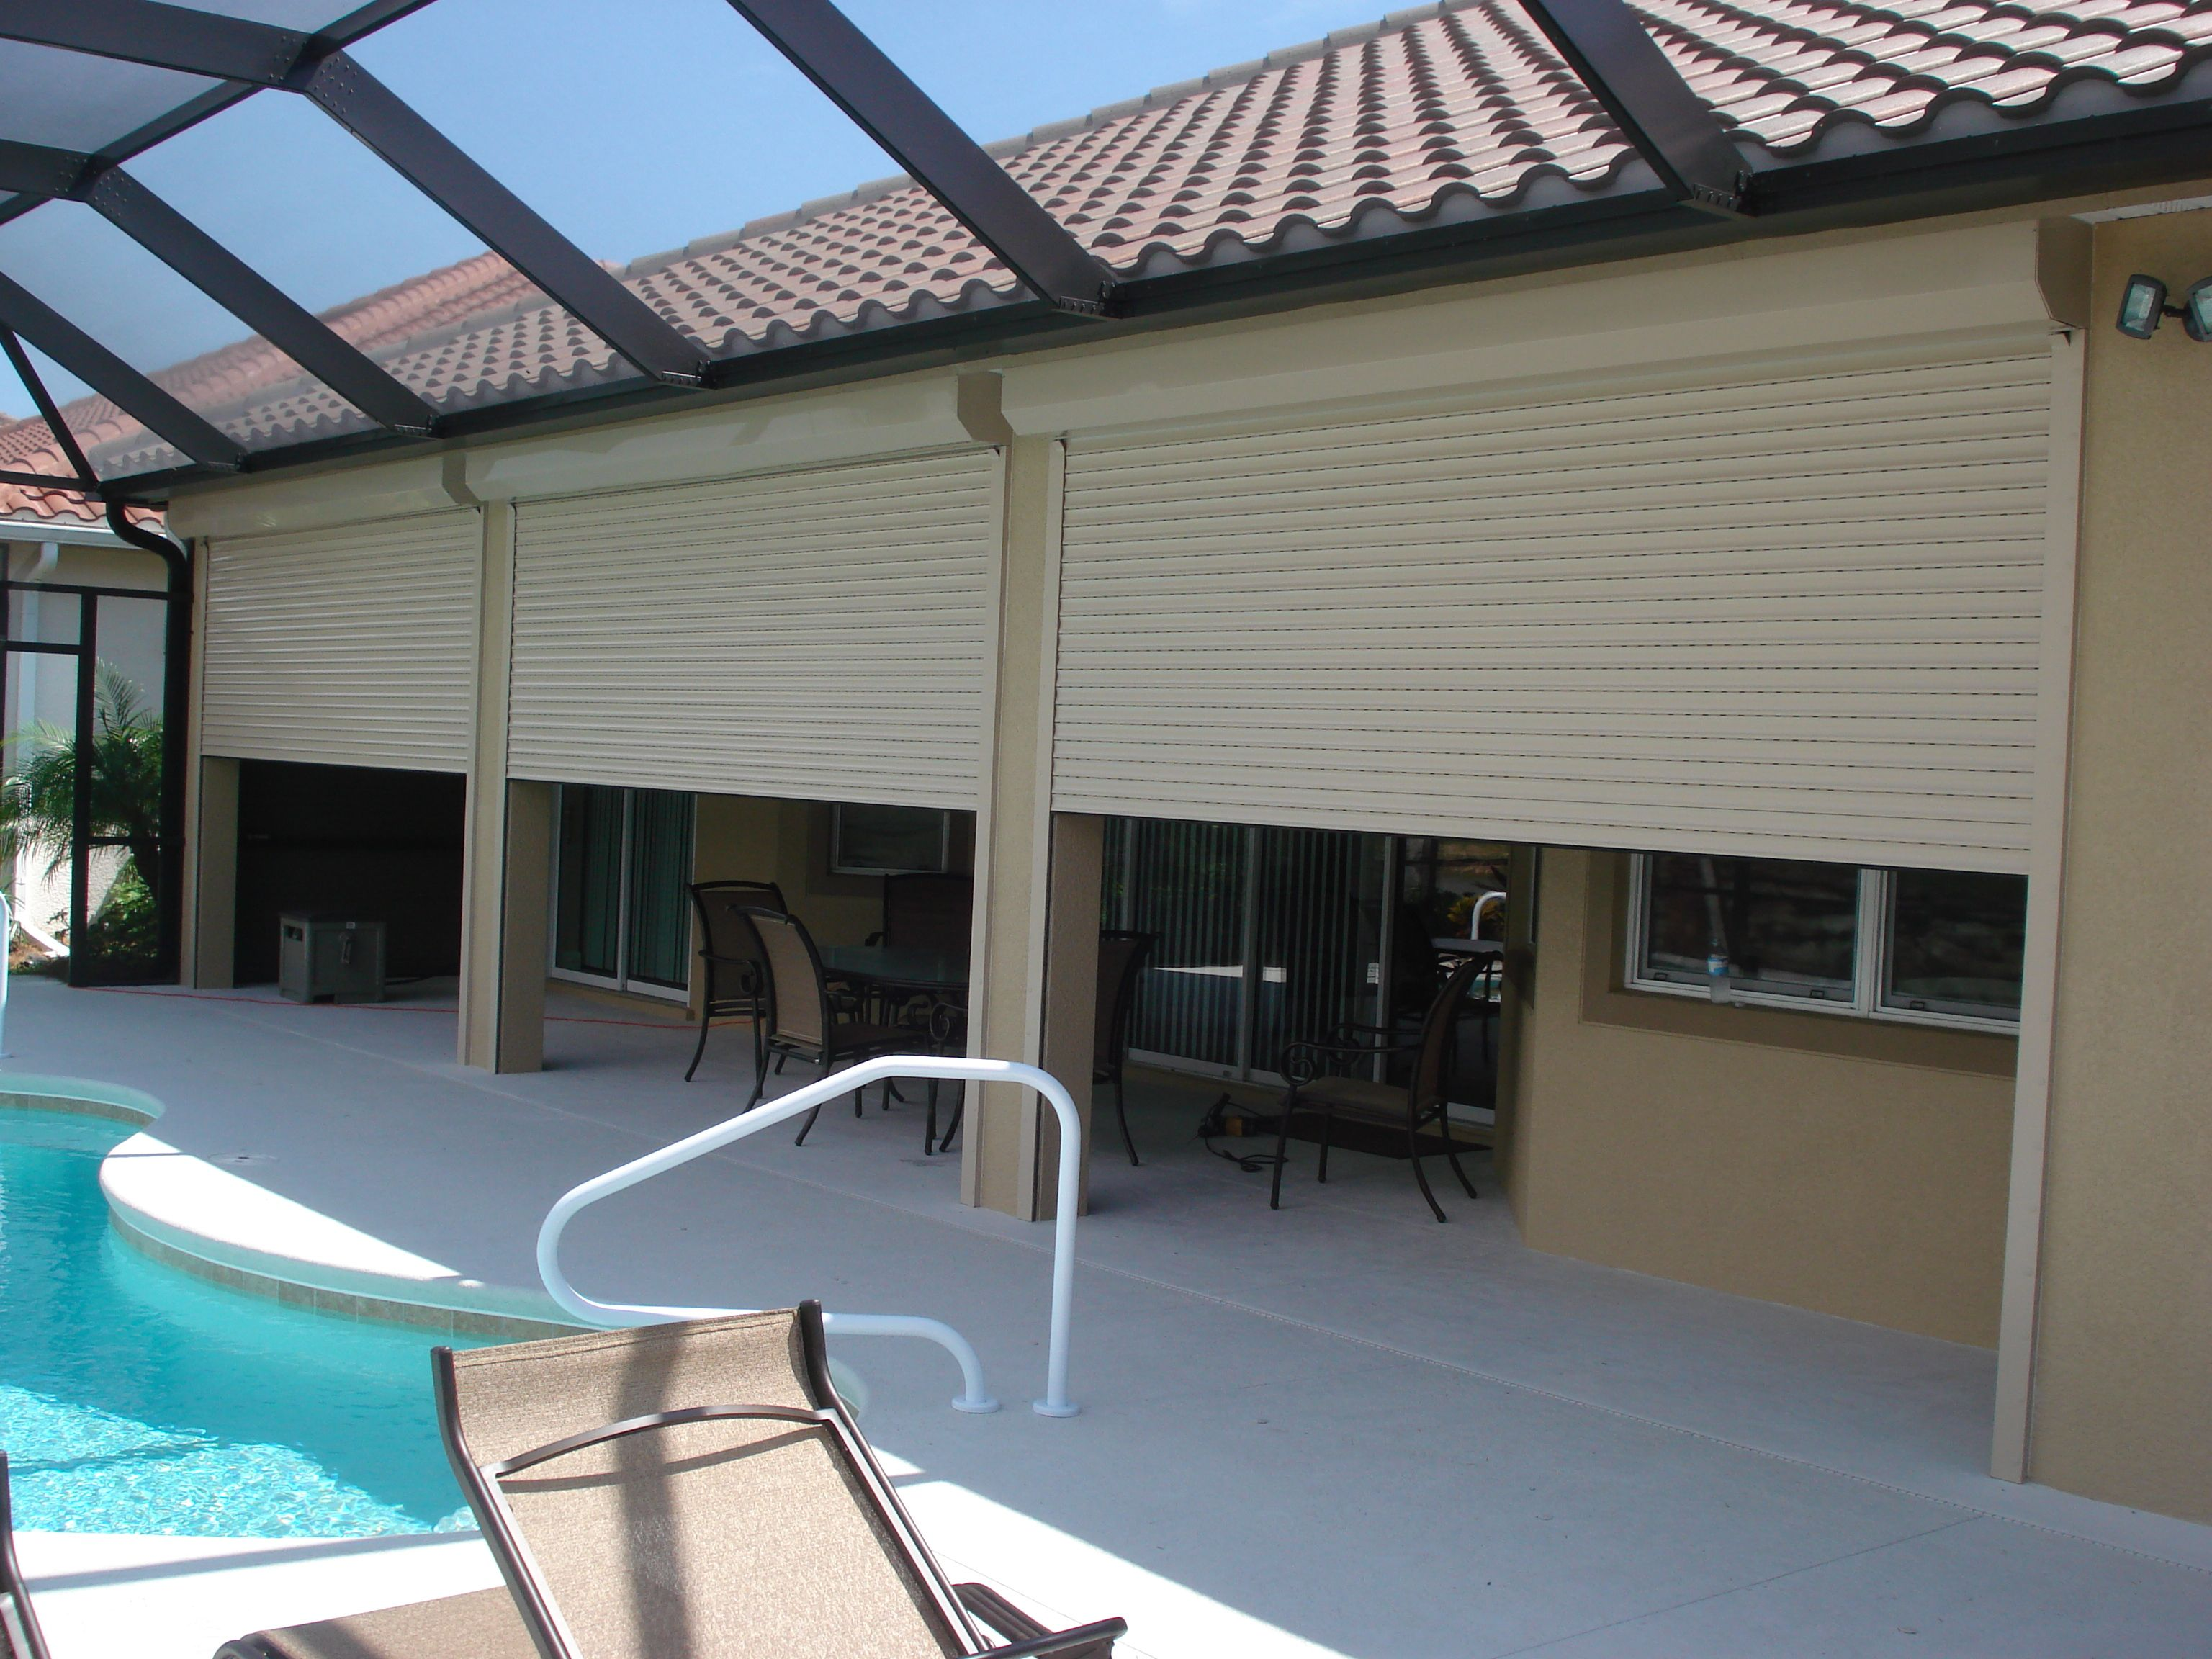 Hurricane Protection From Naples Shutter Ideas For The